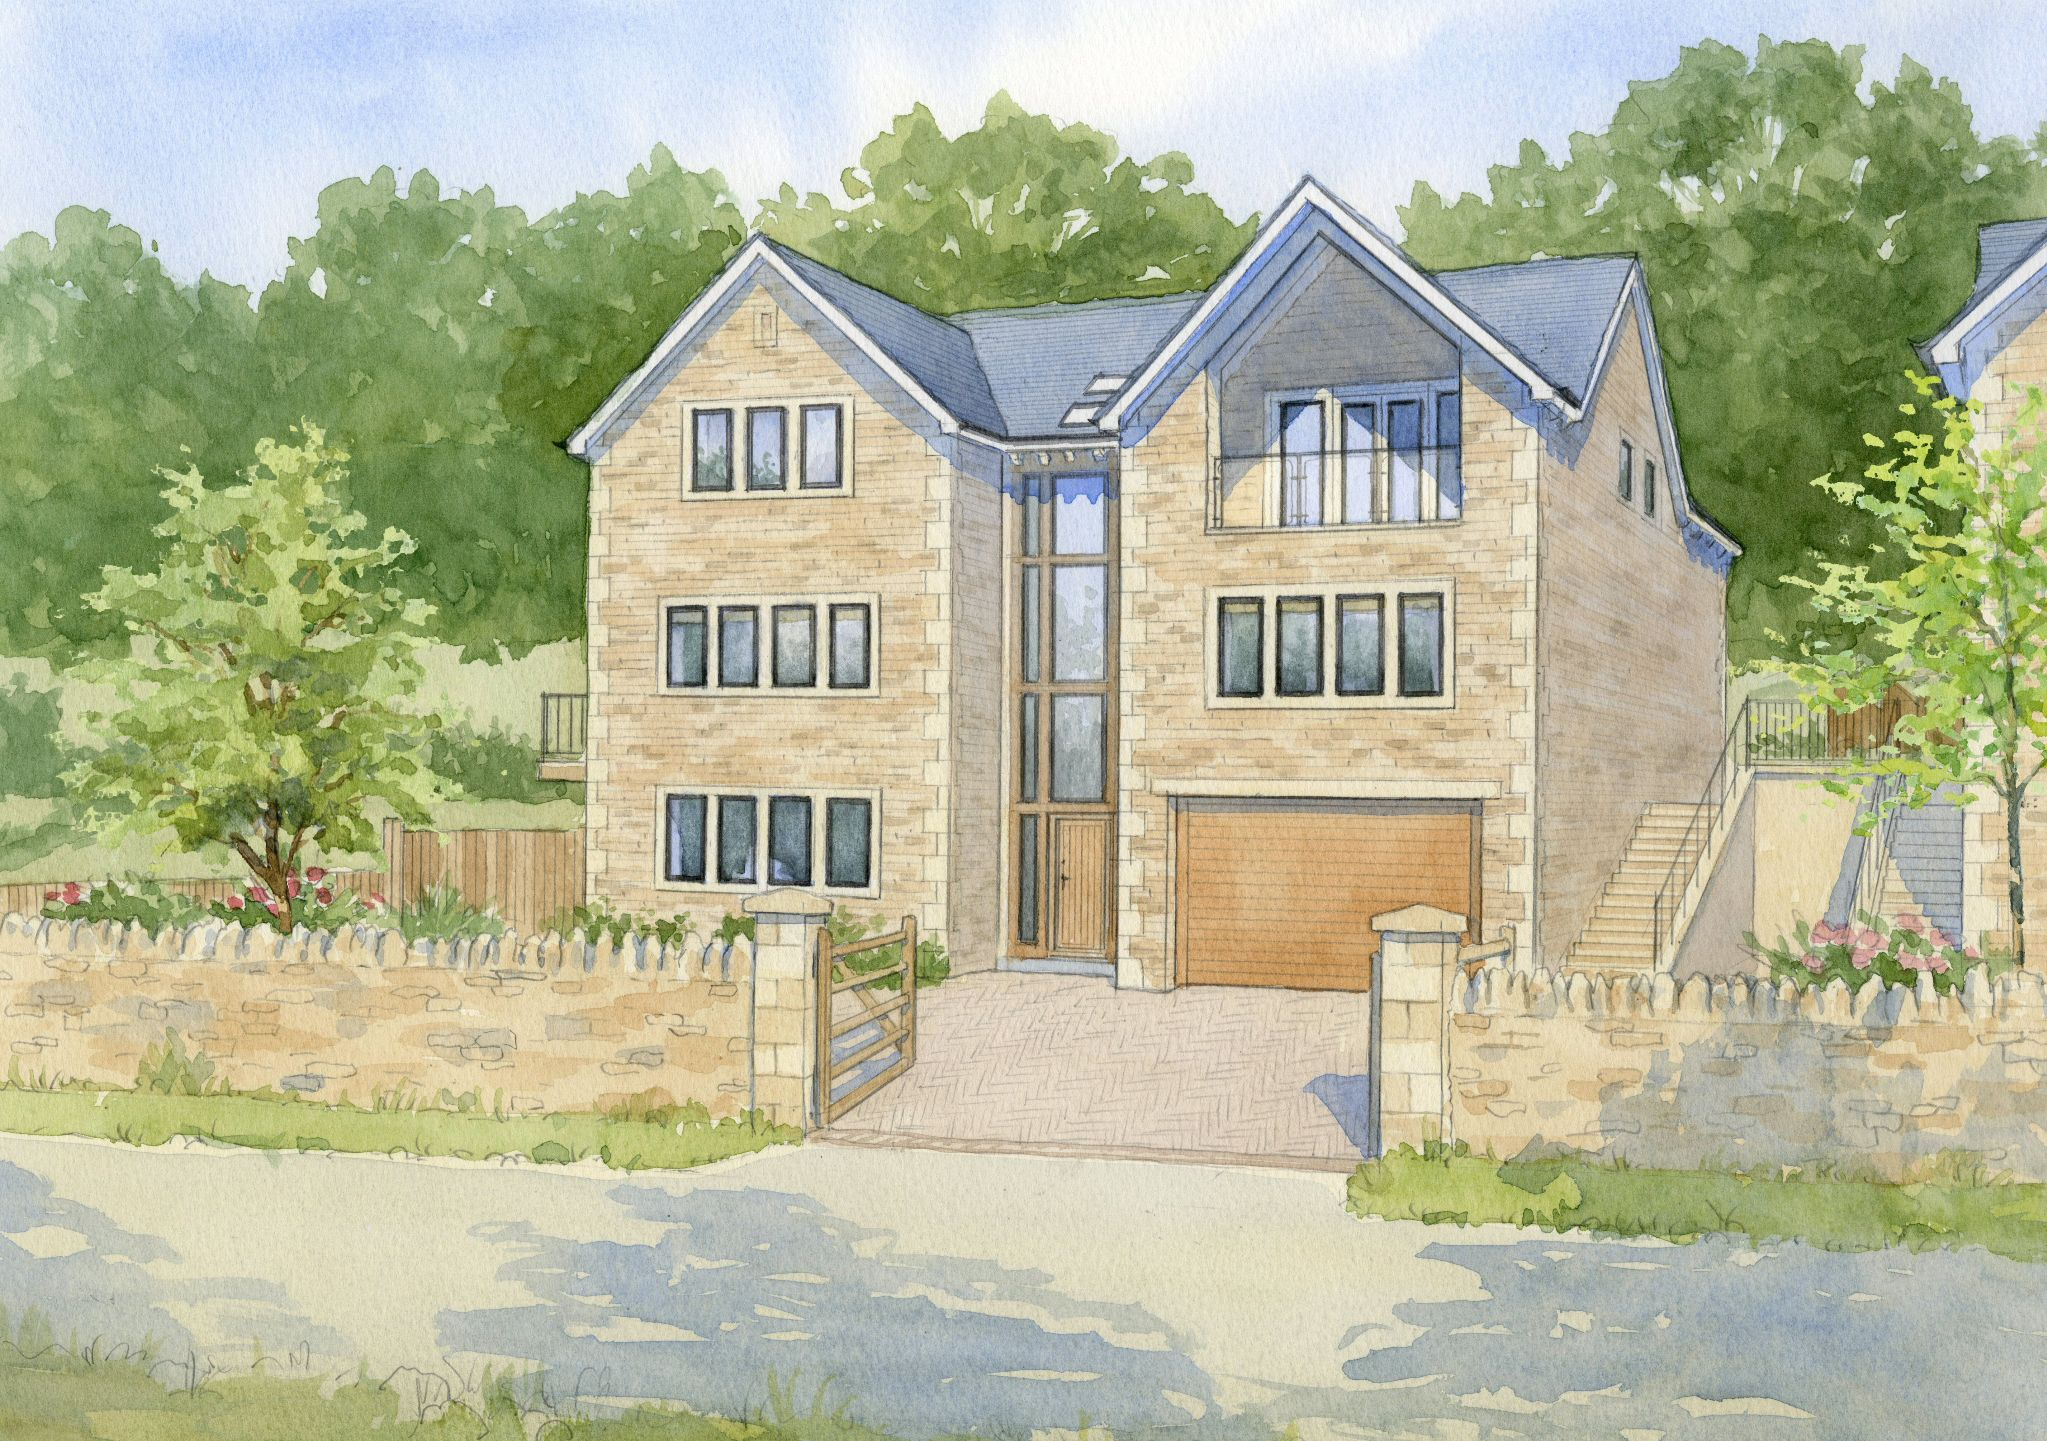 5 Bedroom Detached House For Sale - Photograph 1